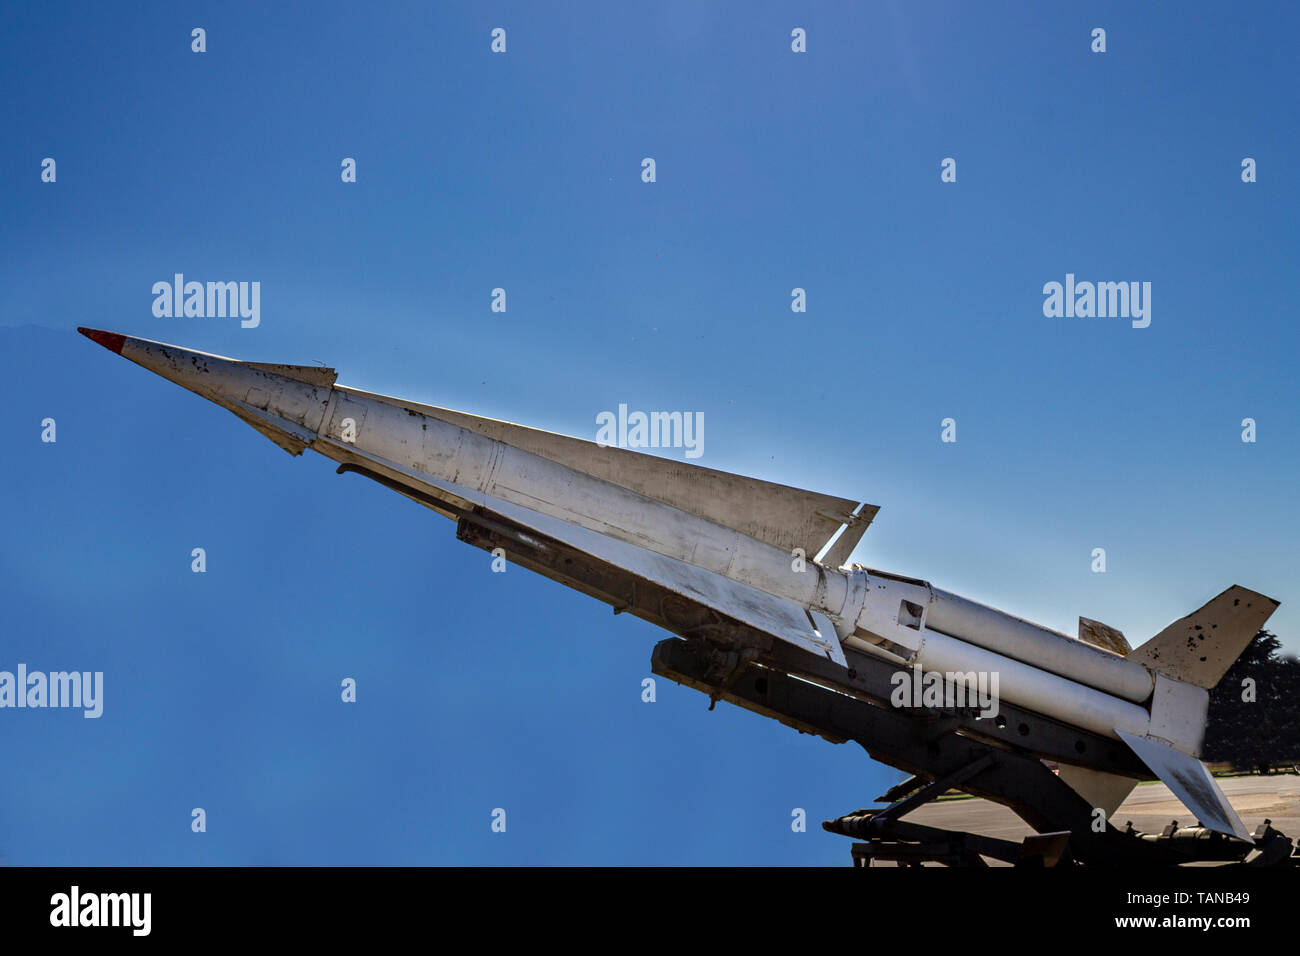 War missile weapon isolated blue sky background - Stock Image